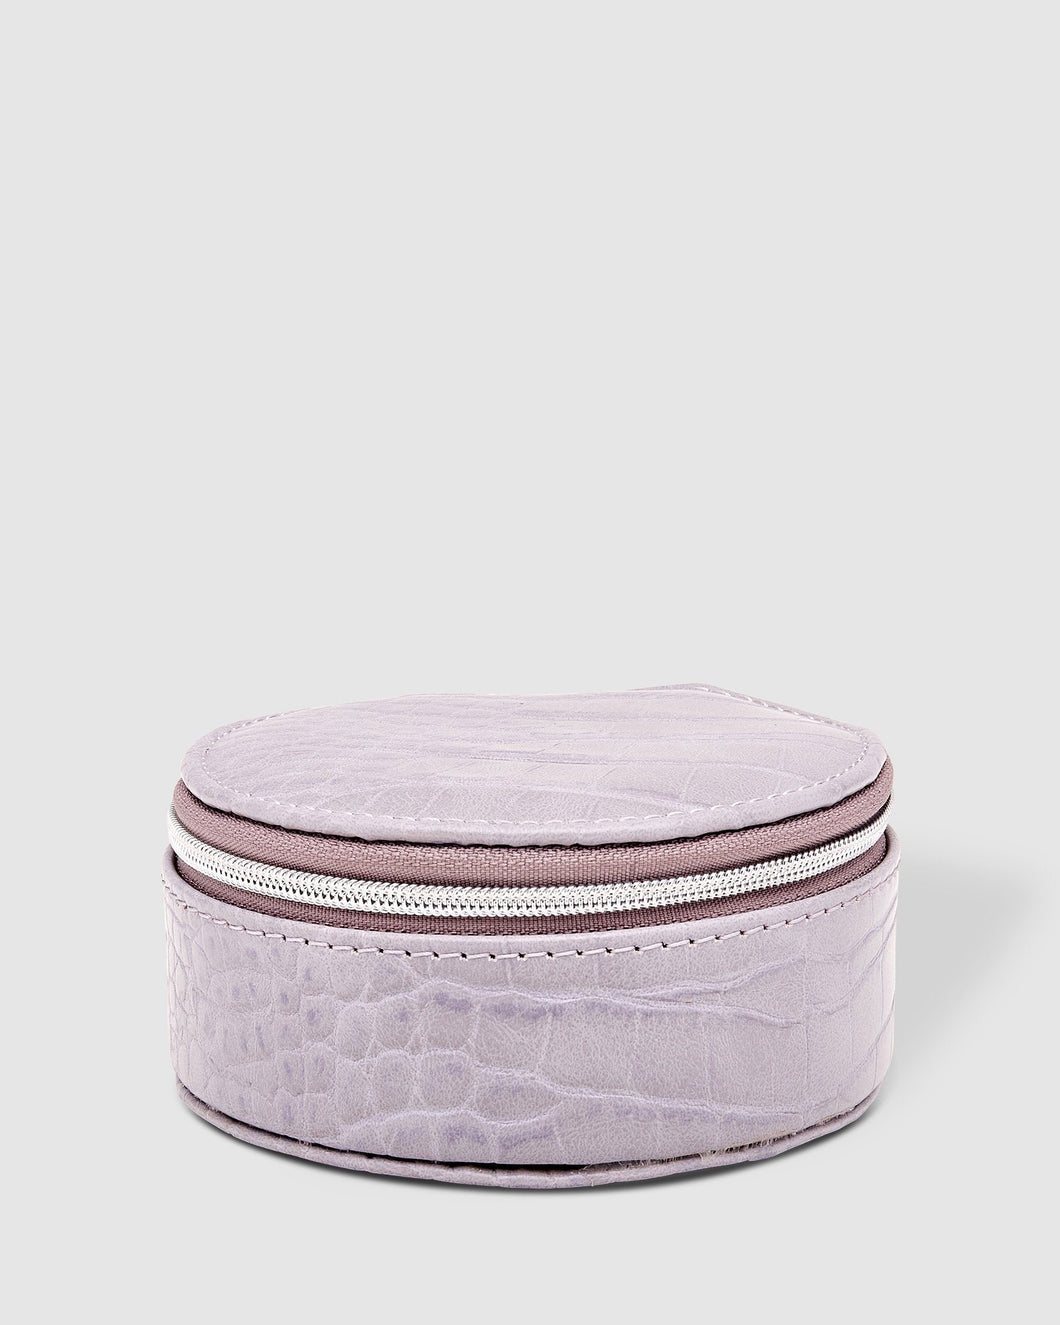 Louenhide Sisco Jewellery Box Croc Lilac - Global Free Style